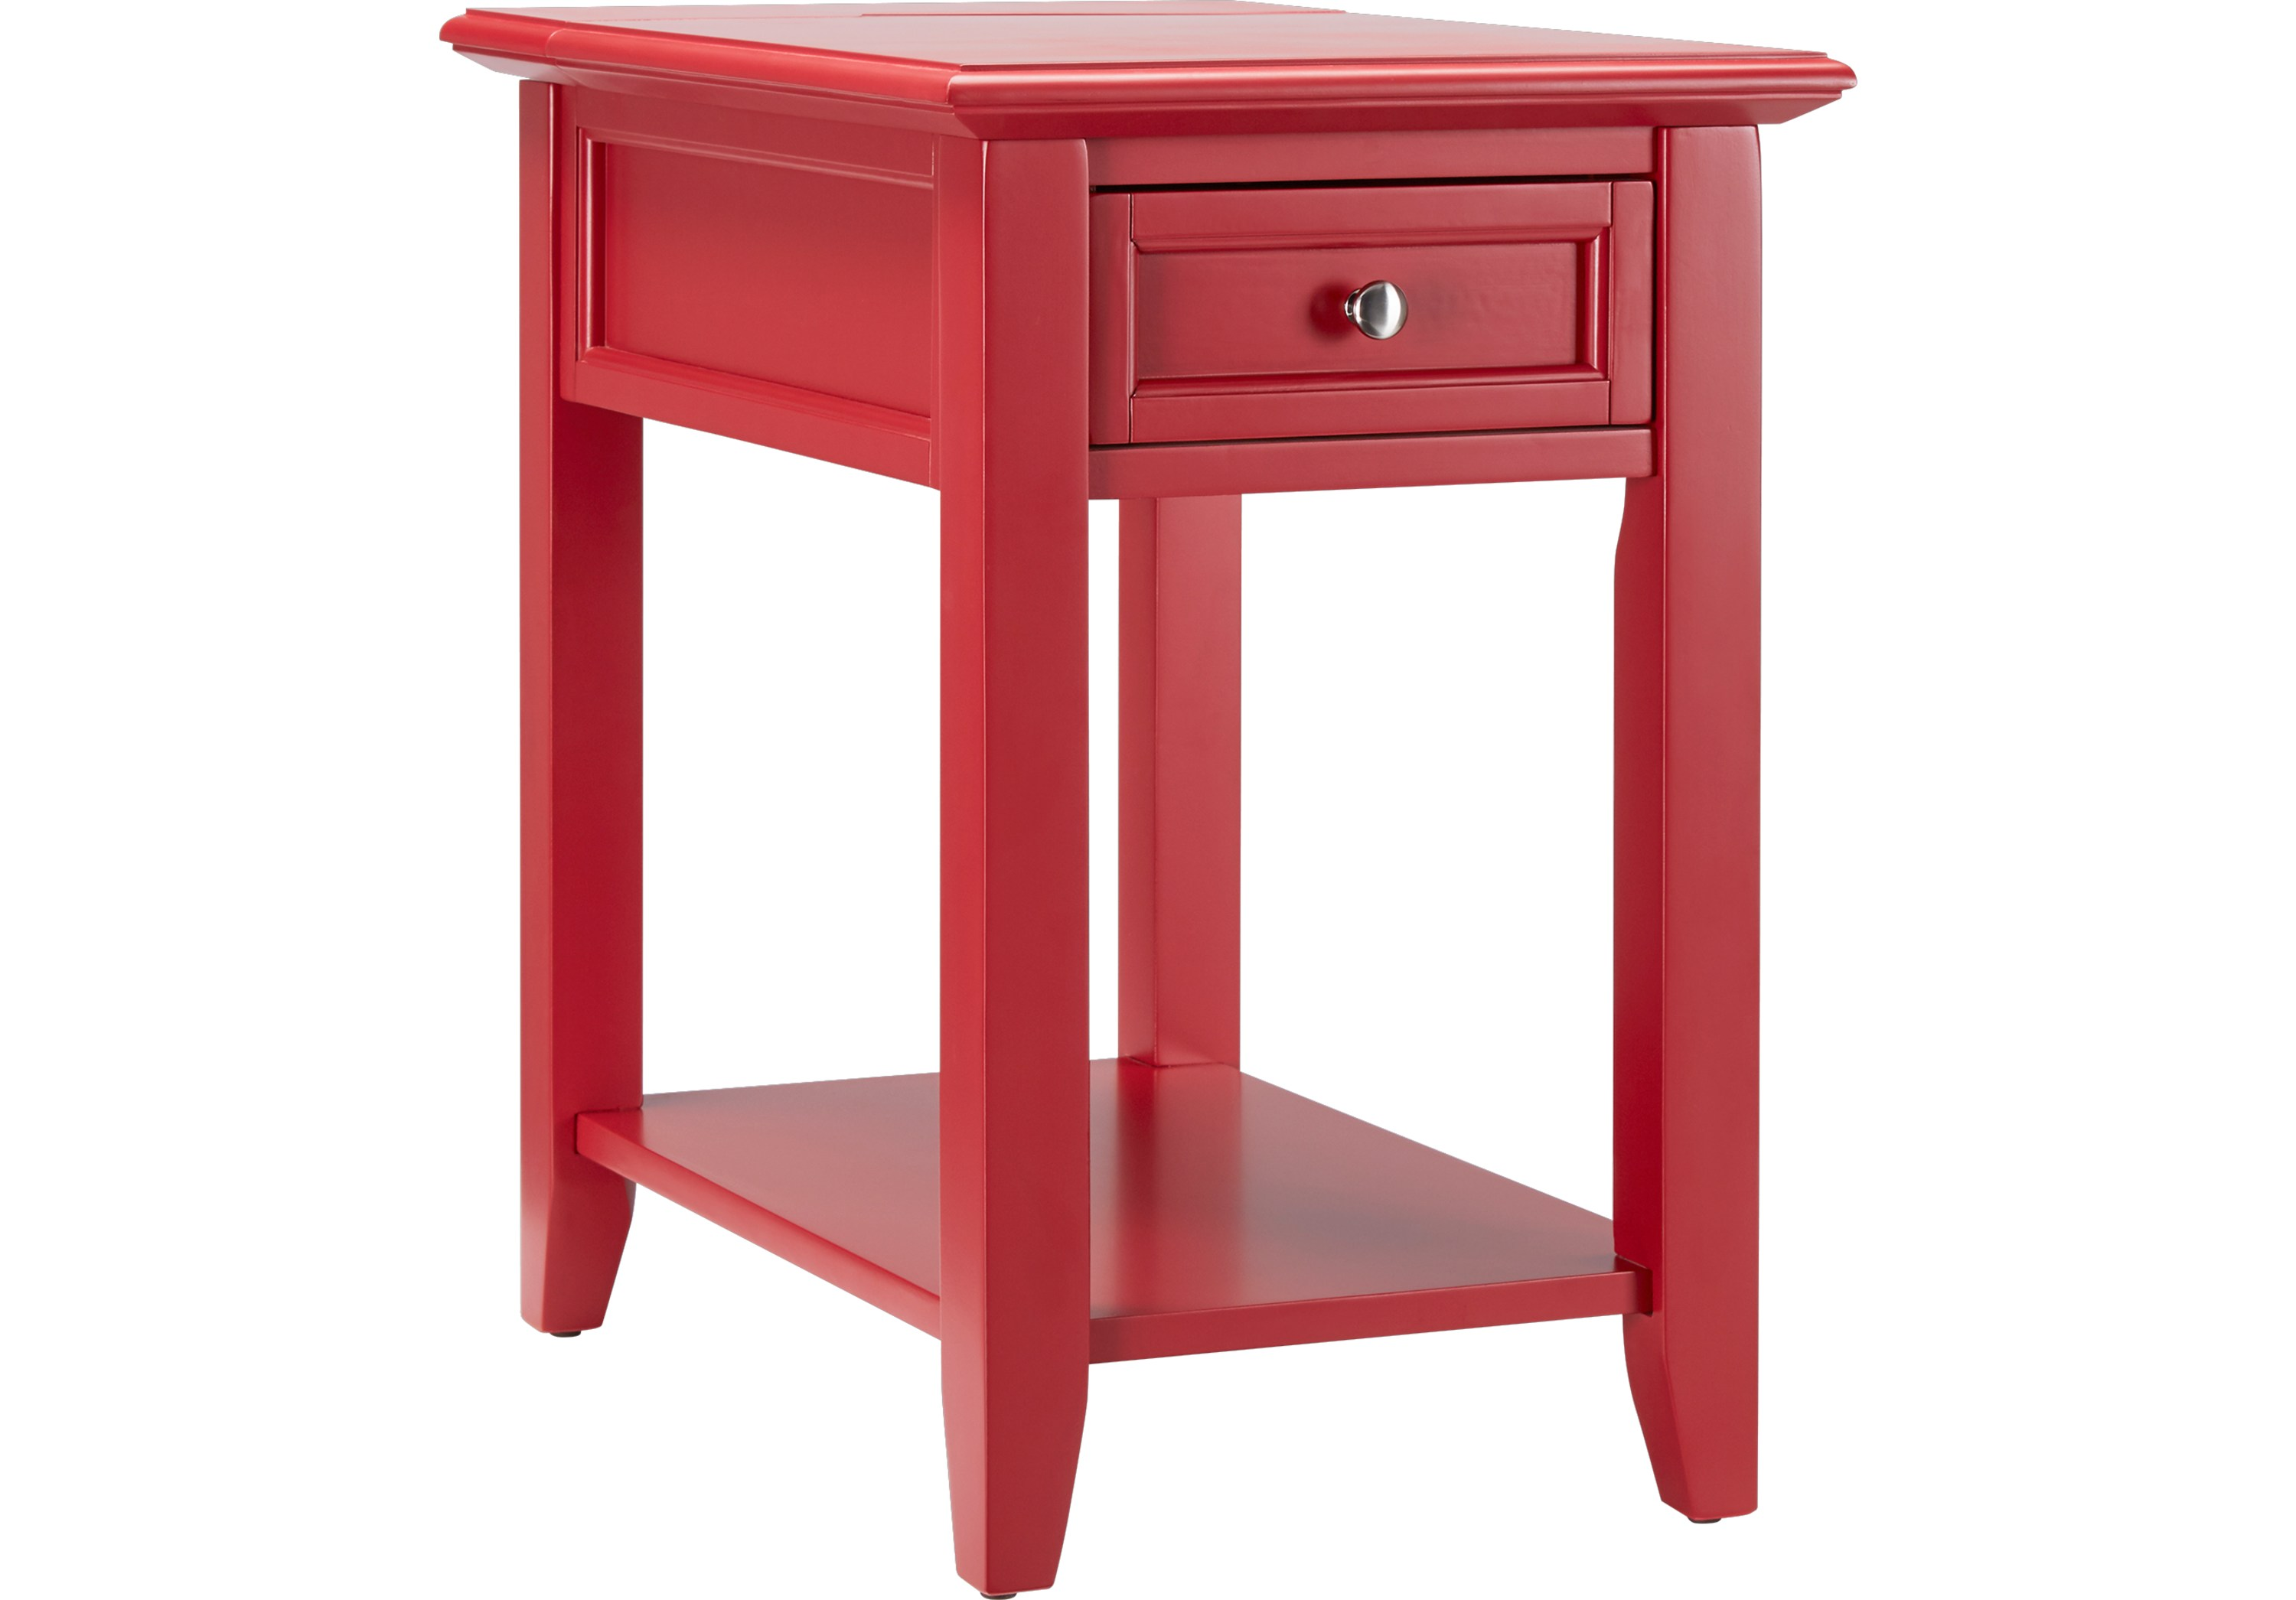 leda red accent table tables colors wood roll over zoom small glass cocktail acrylic drink coffee tray ikea metal legs bar stool drop leaf dining set unique nightstands desk